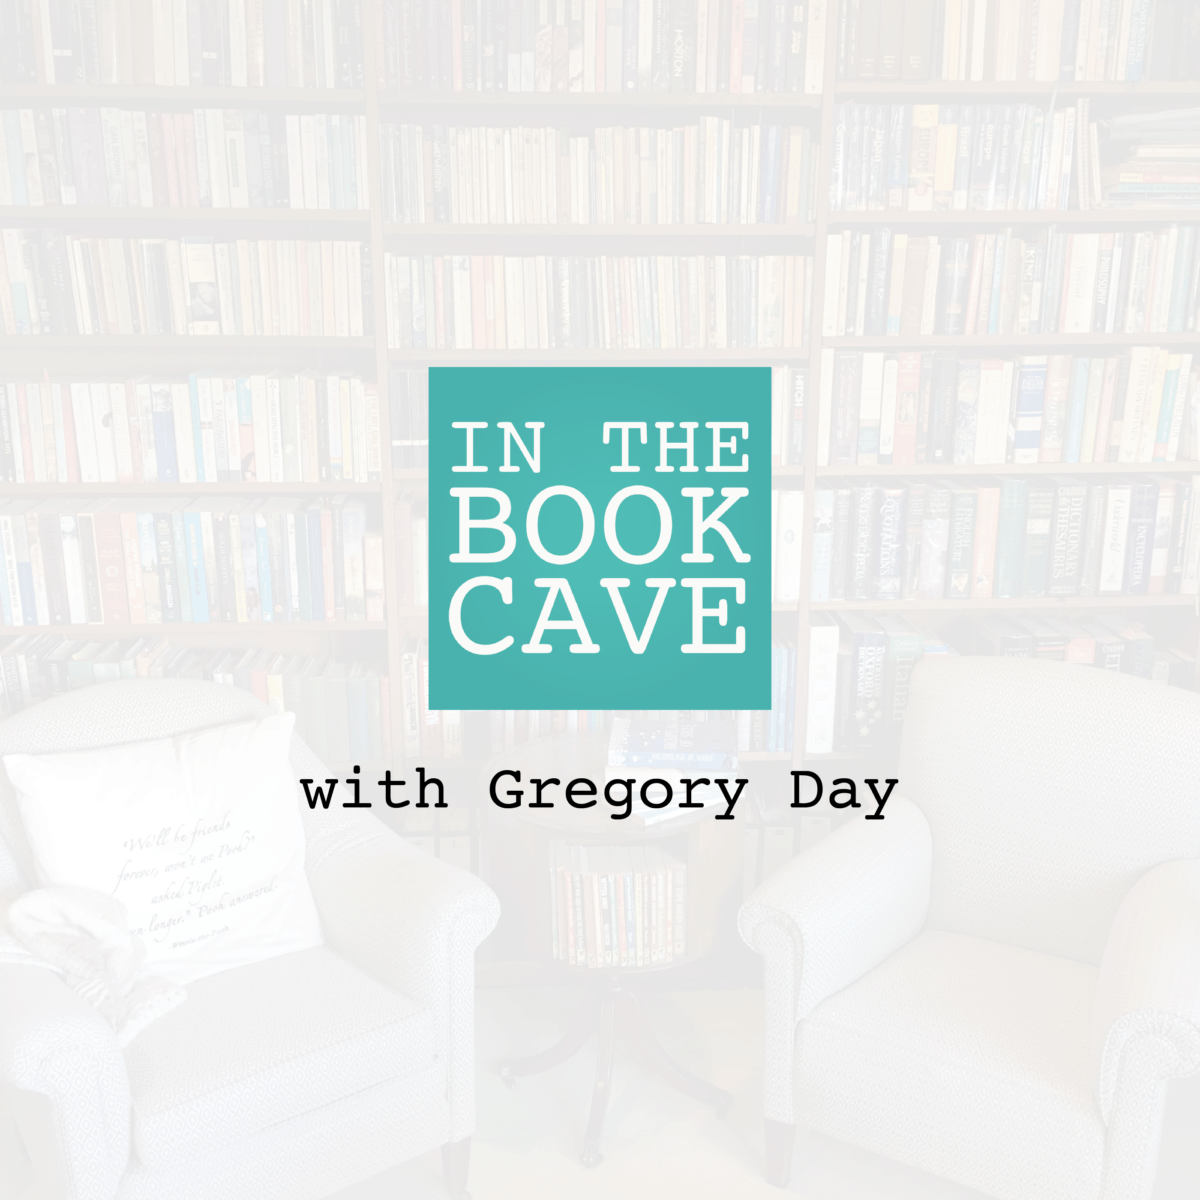 In the Book Cave with Gregory Day